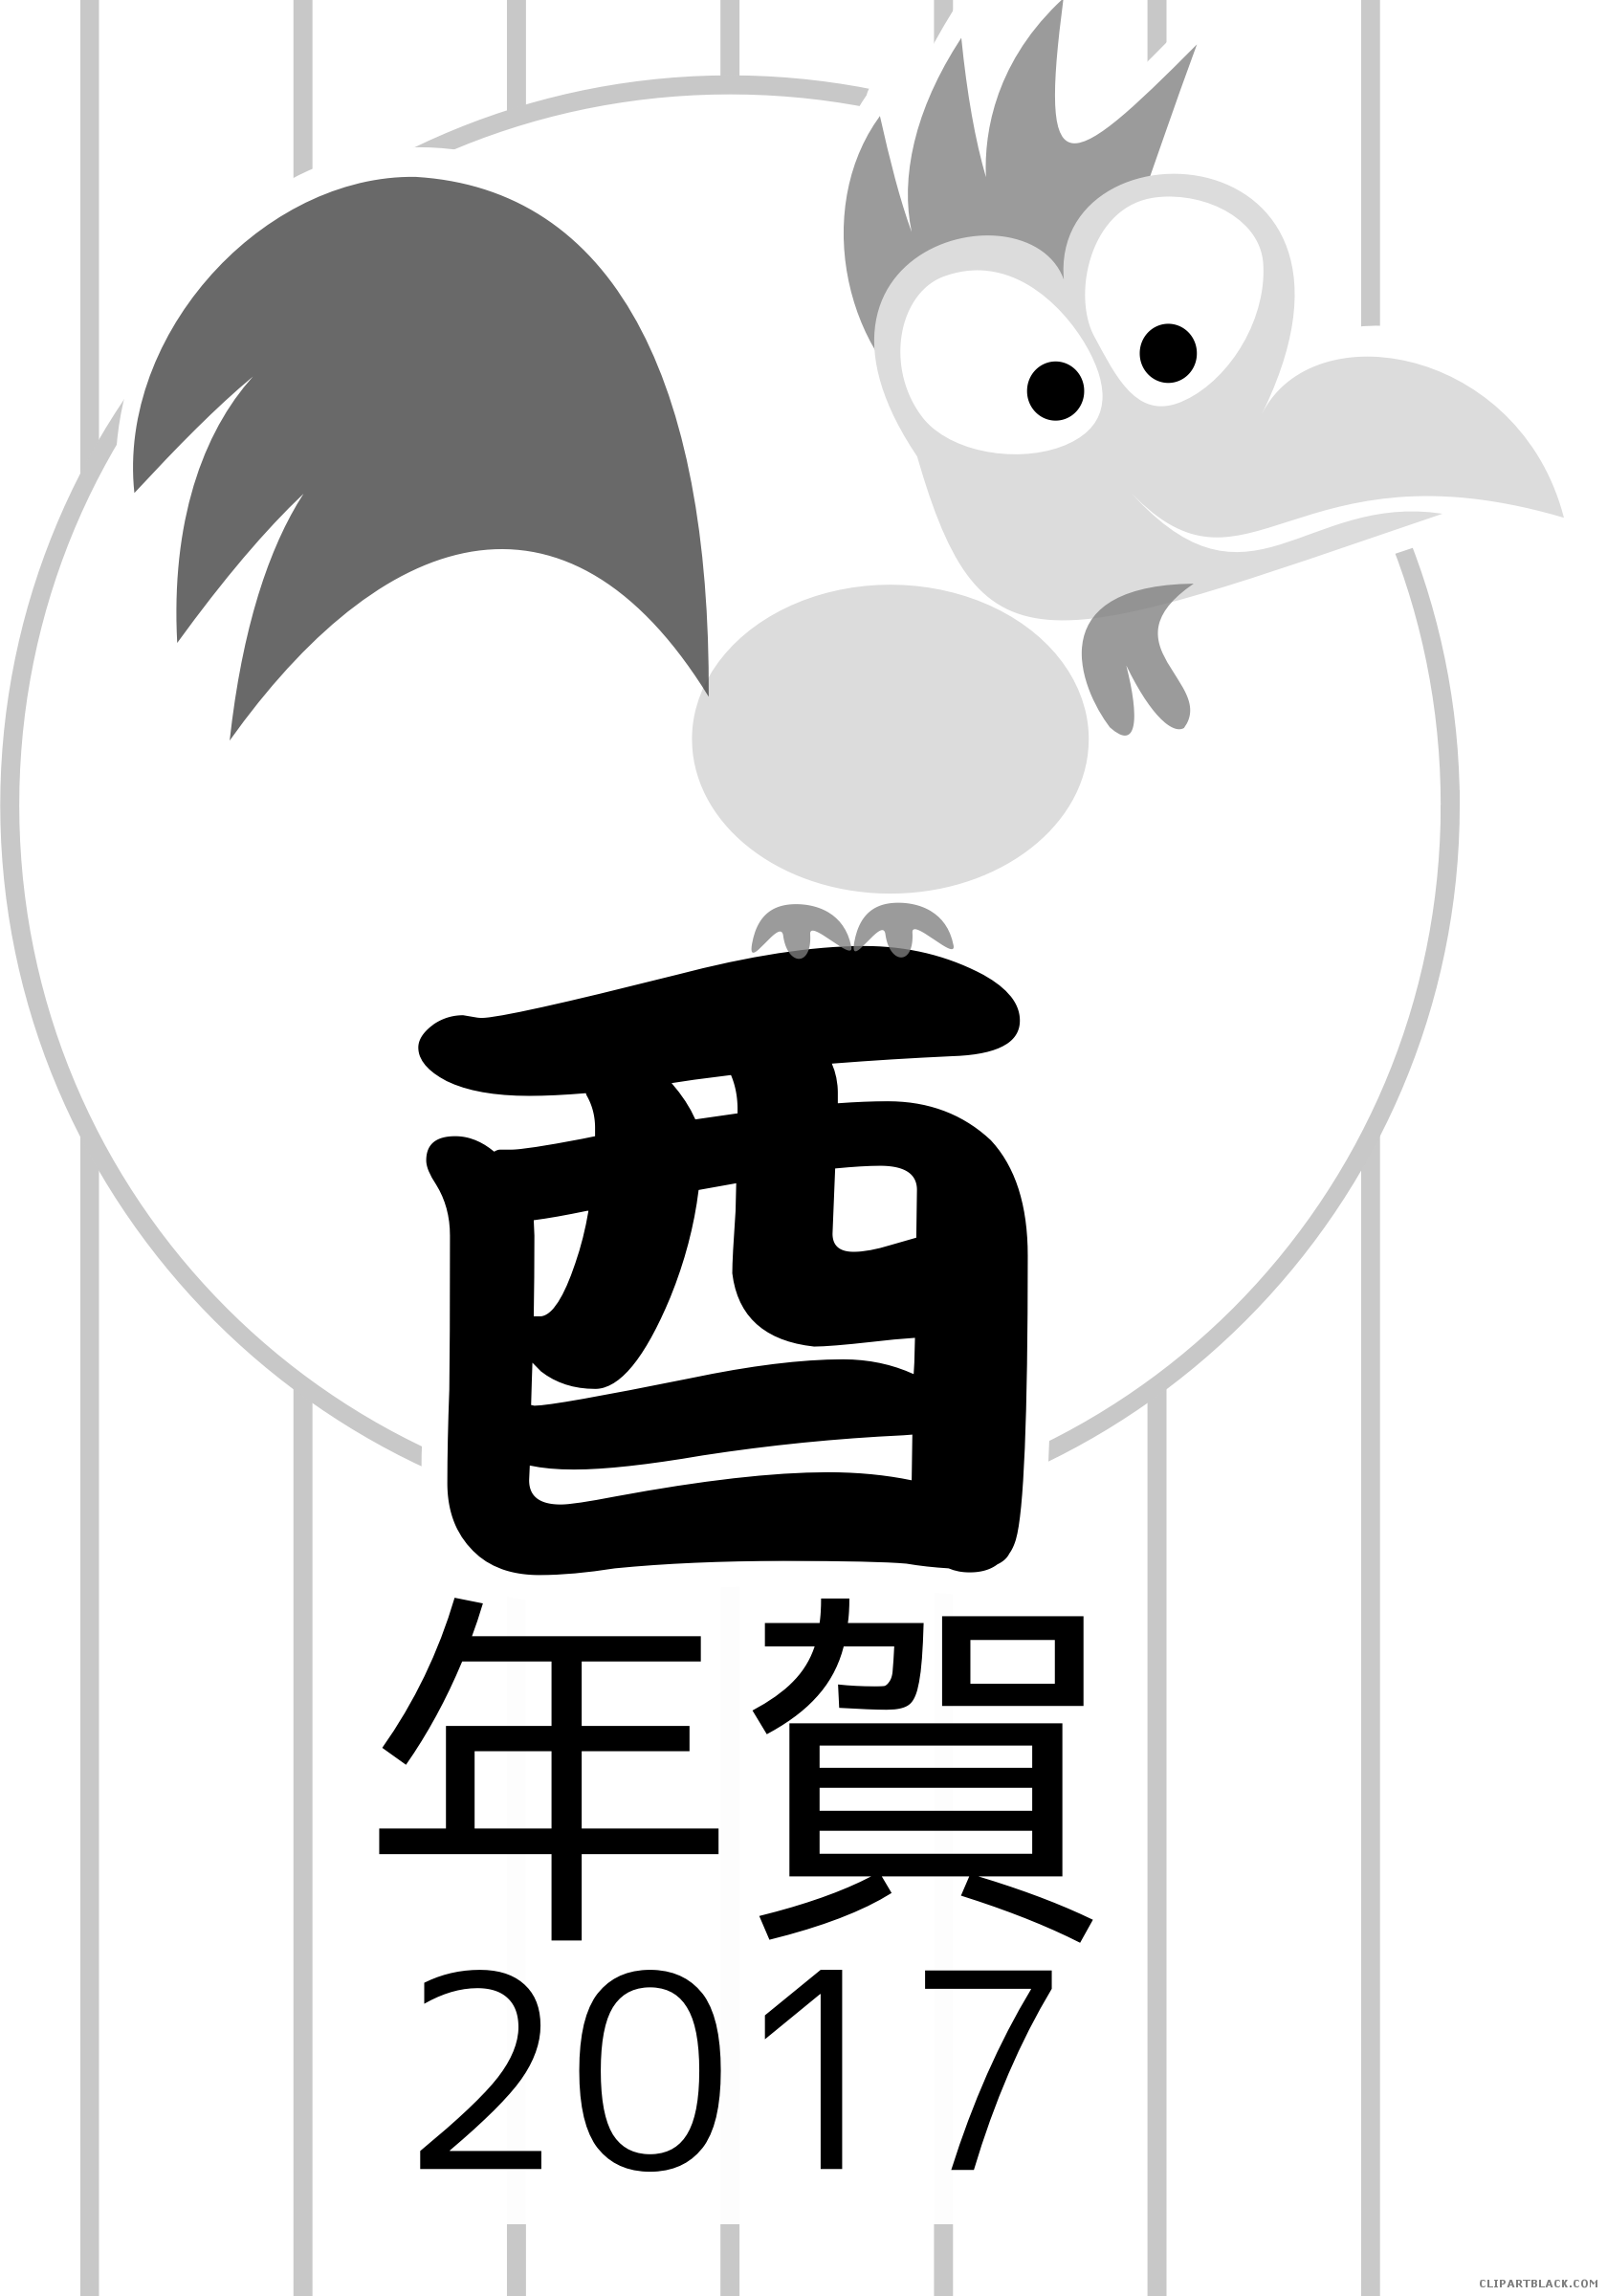 Chinese cat clipart picture black and white stock Chinese Rooster Clipart - ClipartBlack.com picture black and white stock